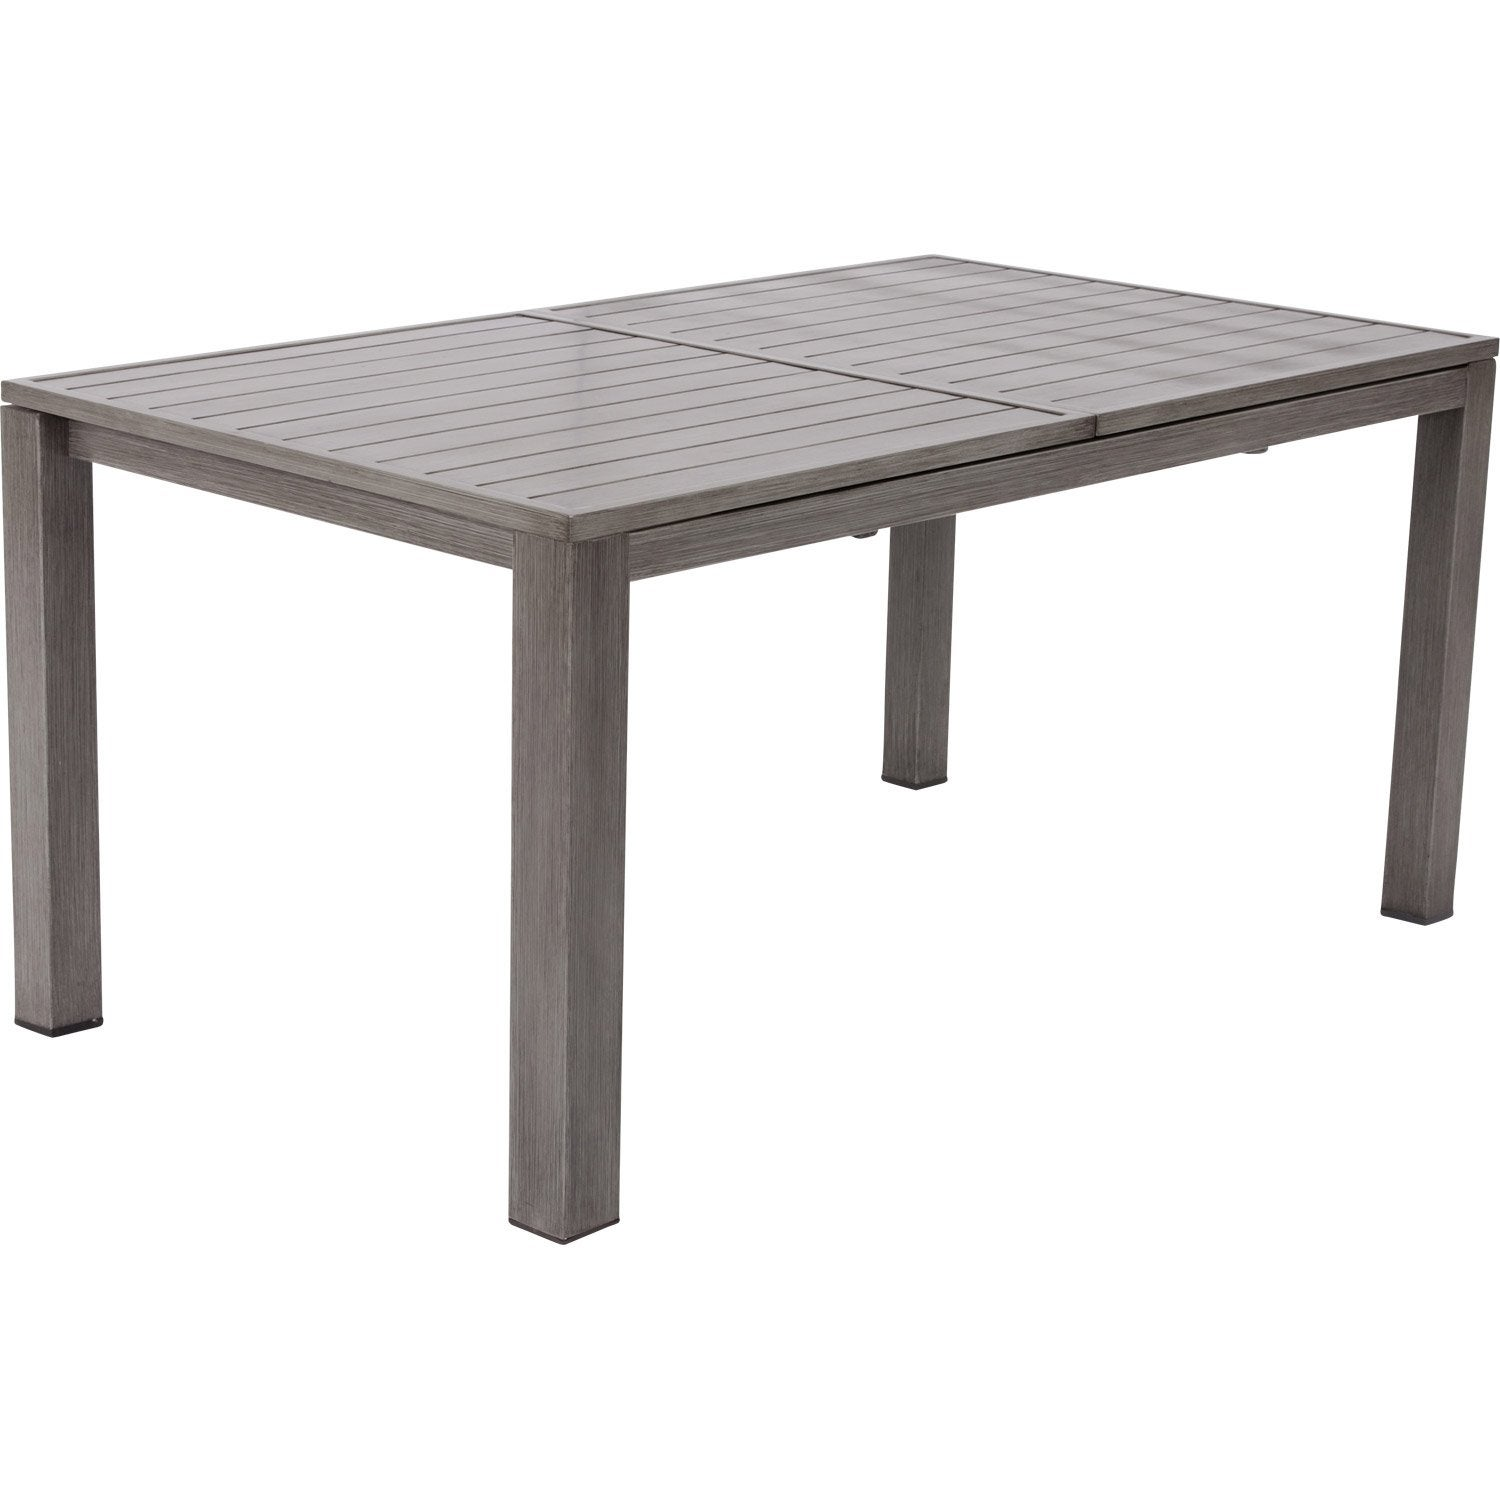 Table de jardin NATERIAL Antibes rectangulaire gris look ...